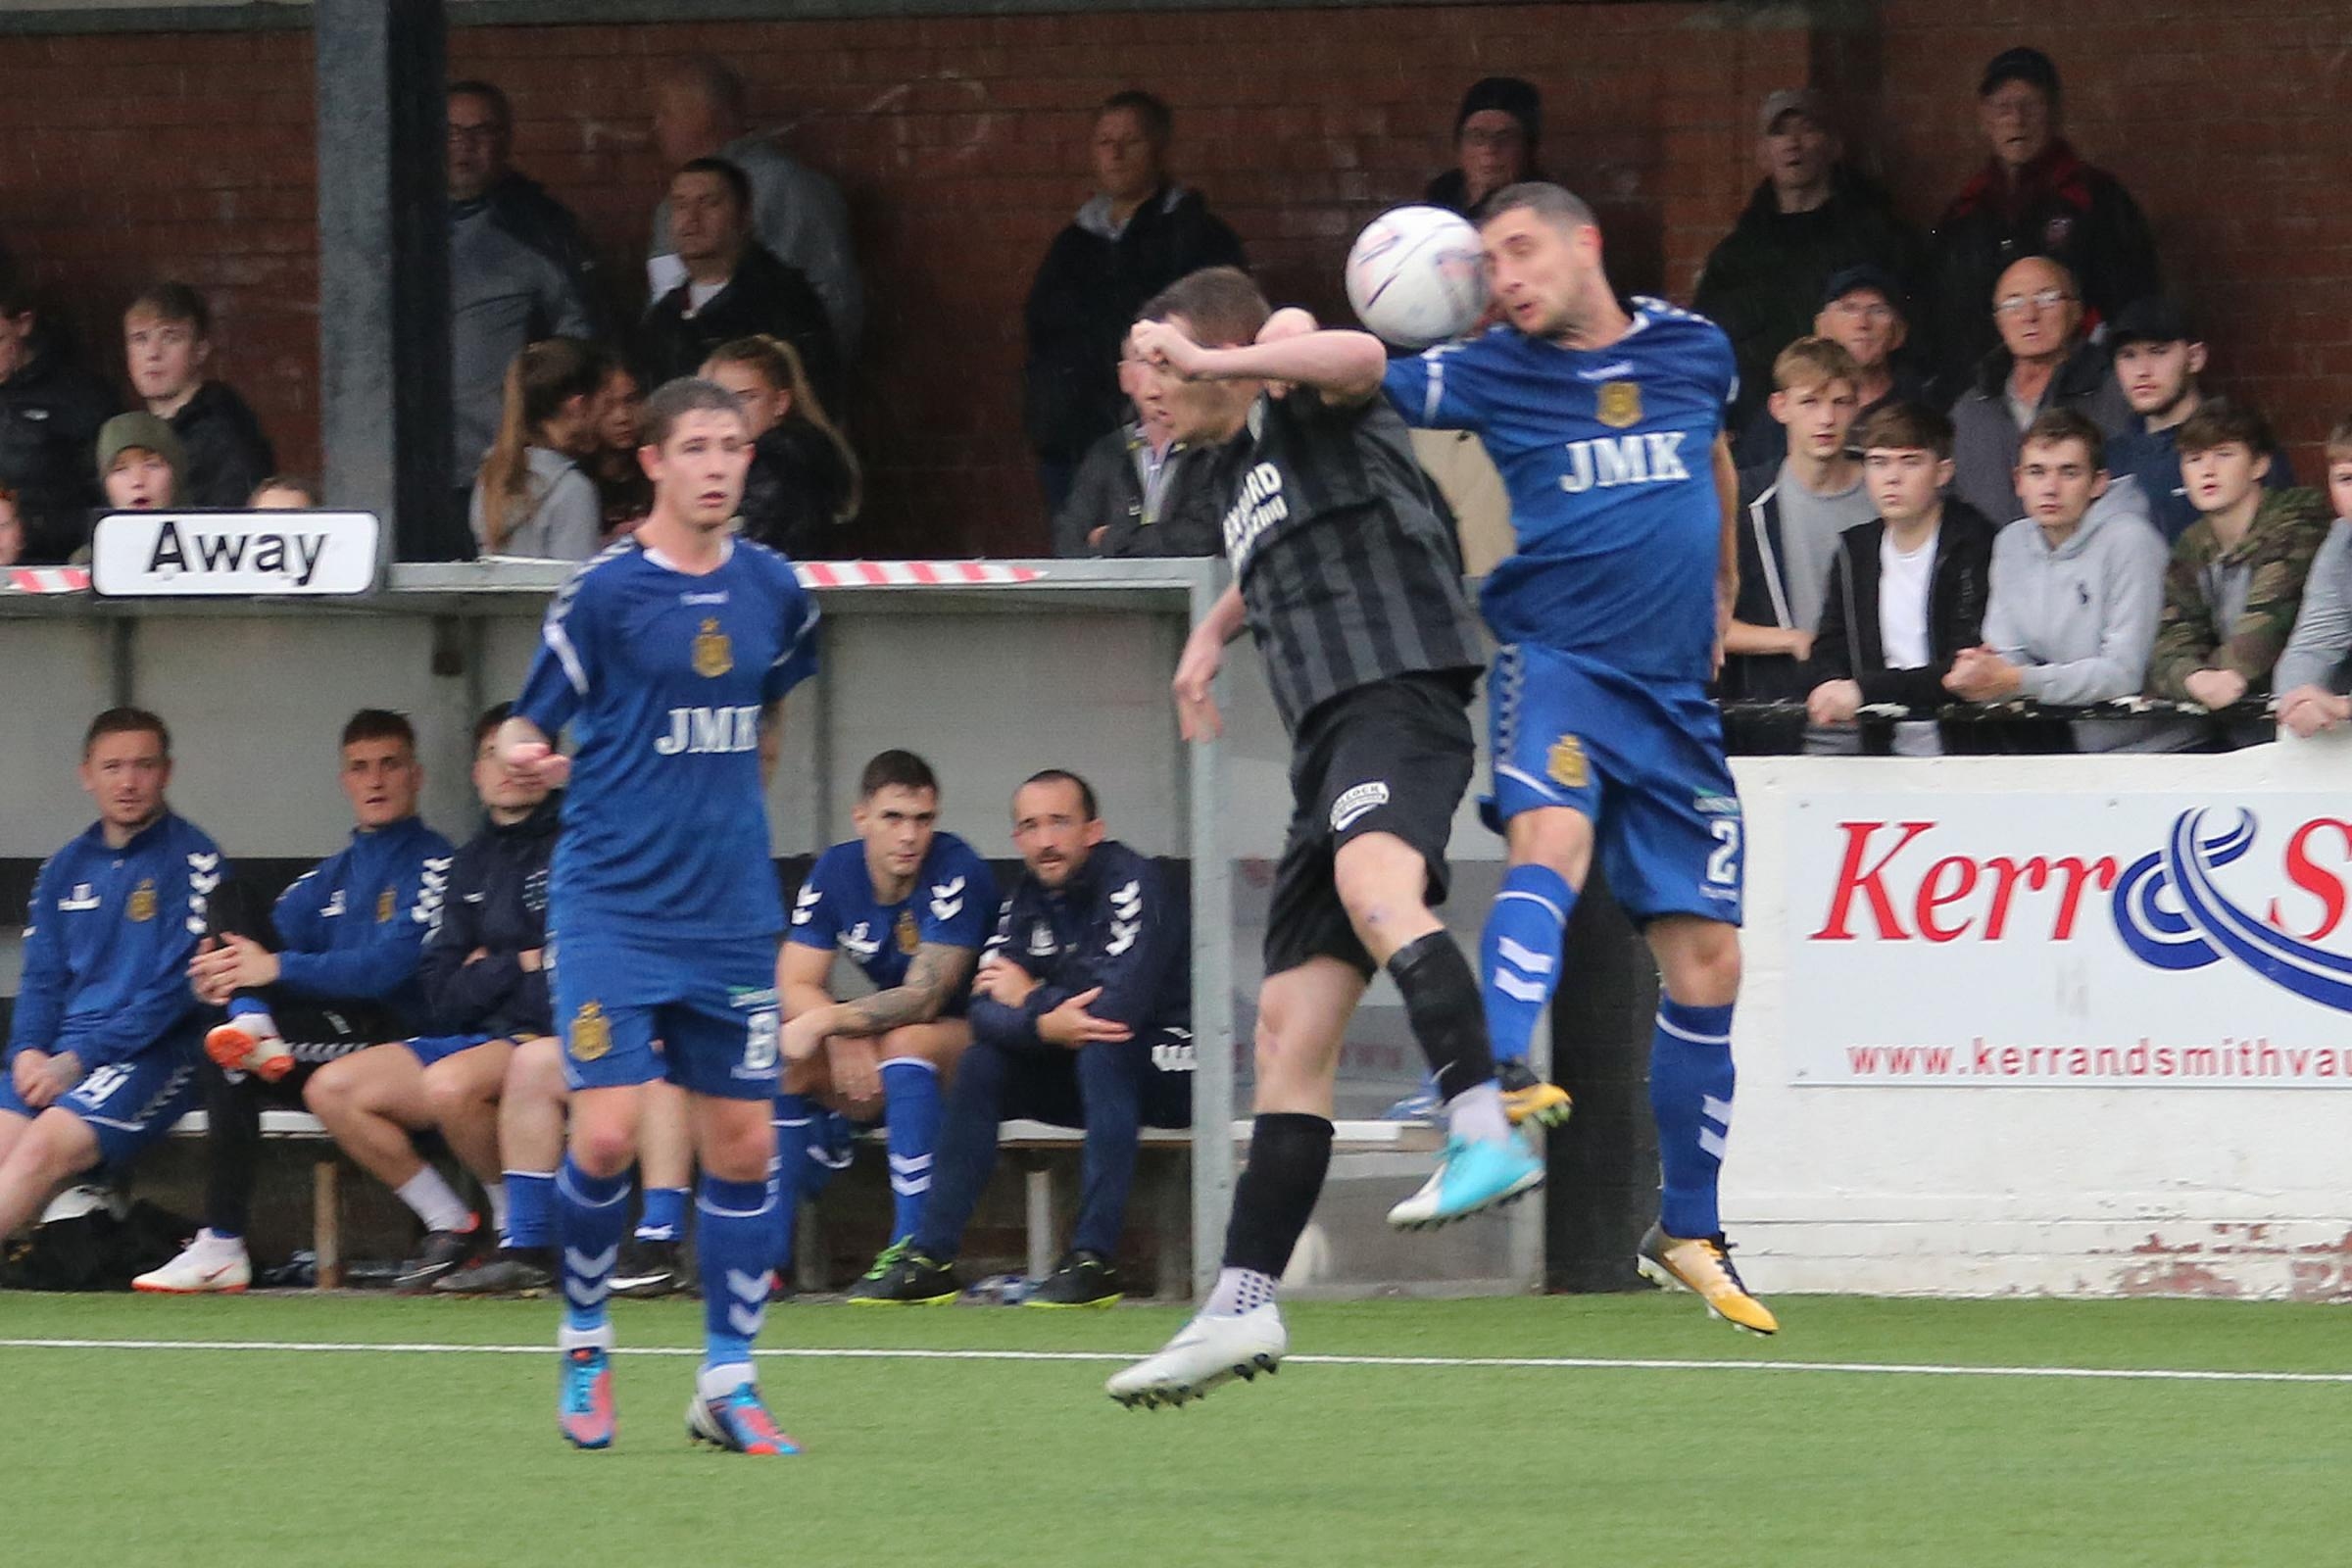 MATCH ACTION: The last time Cumnock and Auchinleck met ended in a 2-0 win for Talbot at Townhead Park in the Sectional League Cup back in August of this year